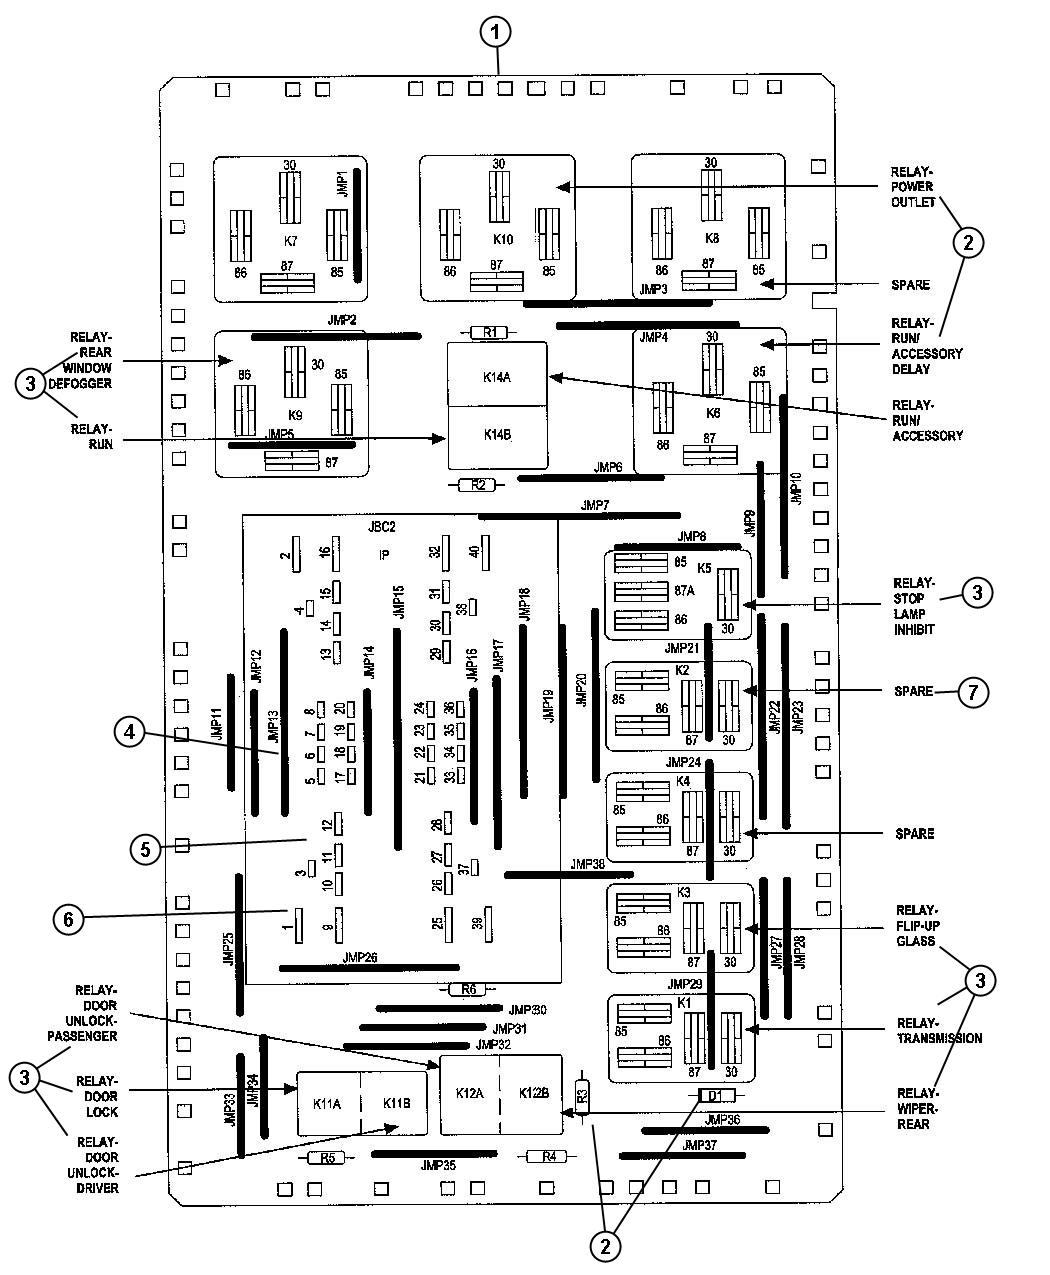 Electrical Wiring Diagram 2006 Jeep Commander, Electrical